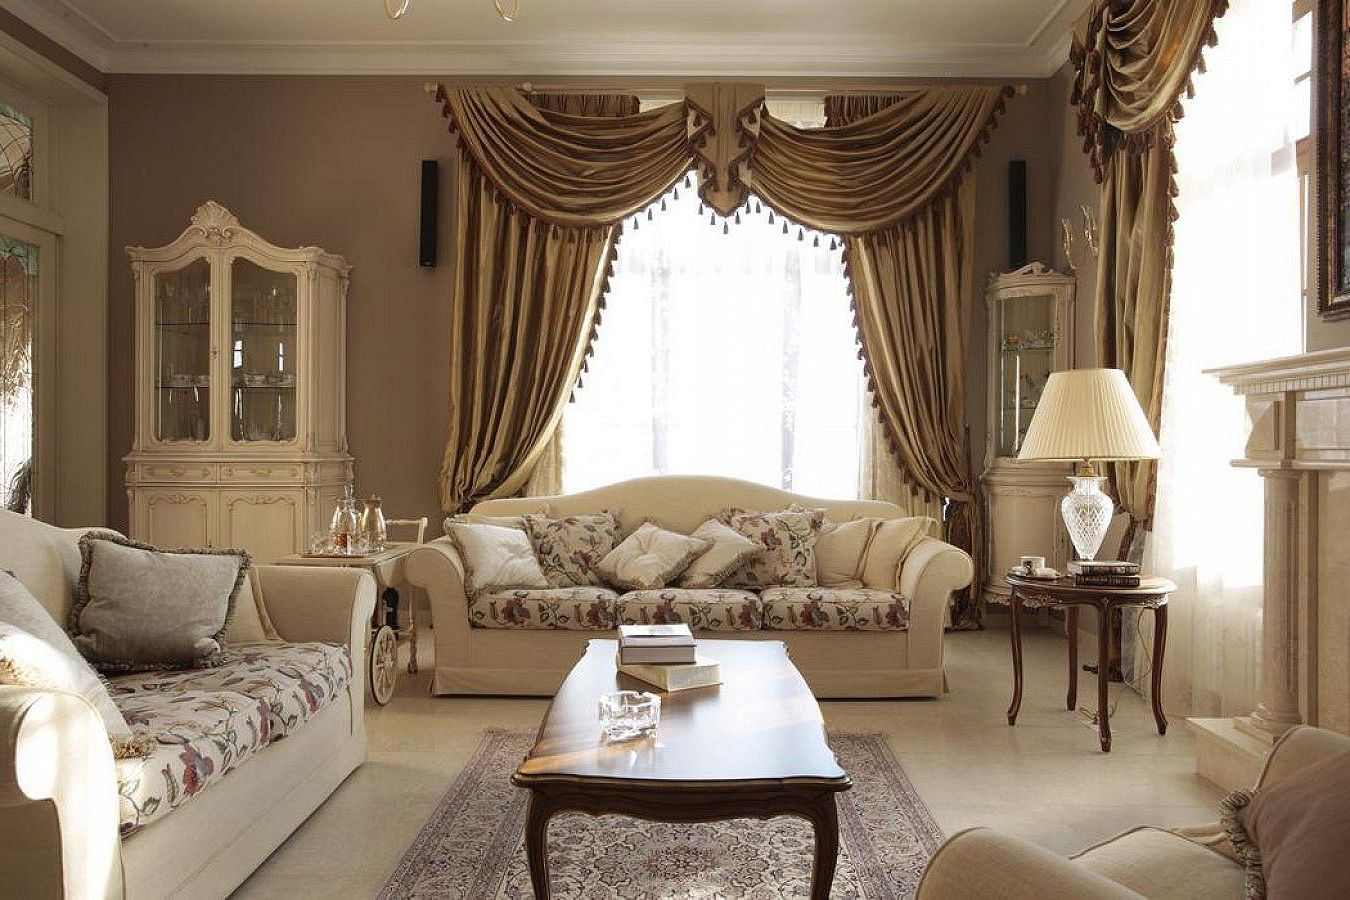 Classic style interior design ideas - Interior living room design ideas ...